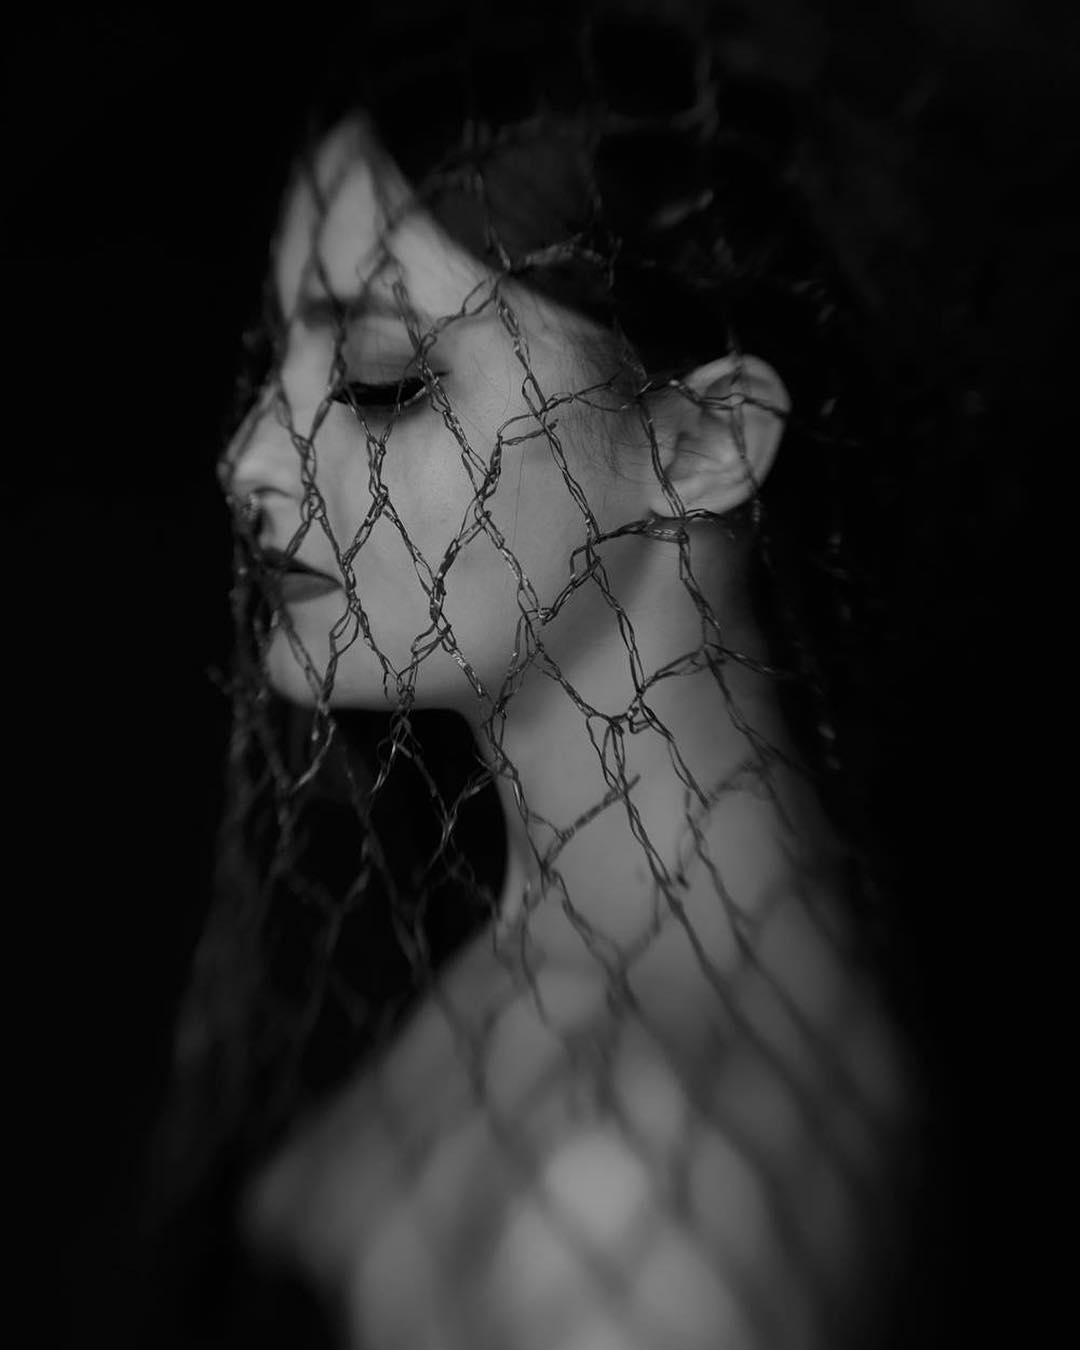 black and white woman with veil chain over her face eyes closed featured photos of the week